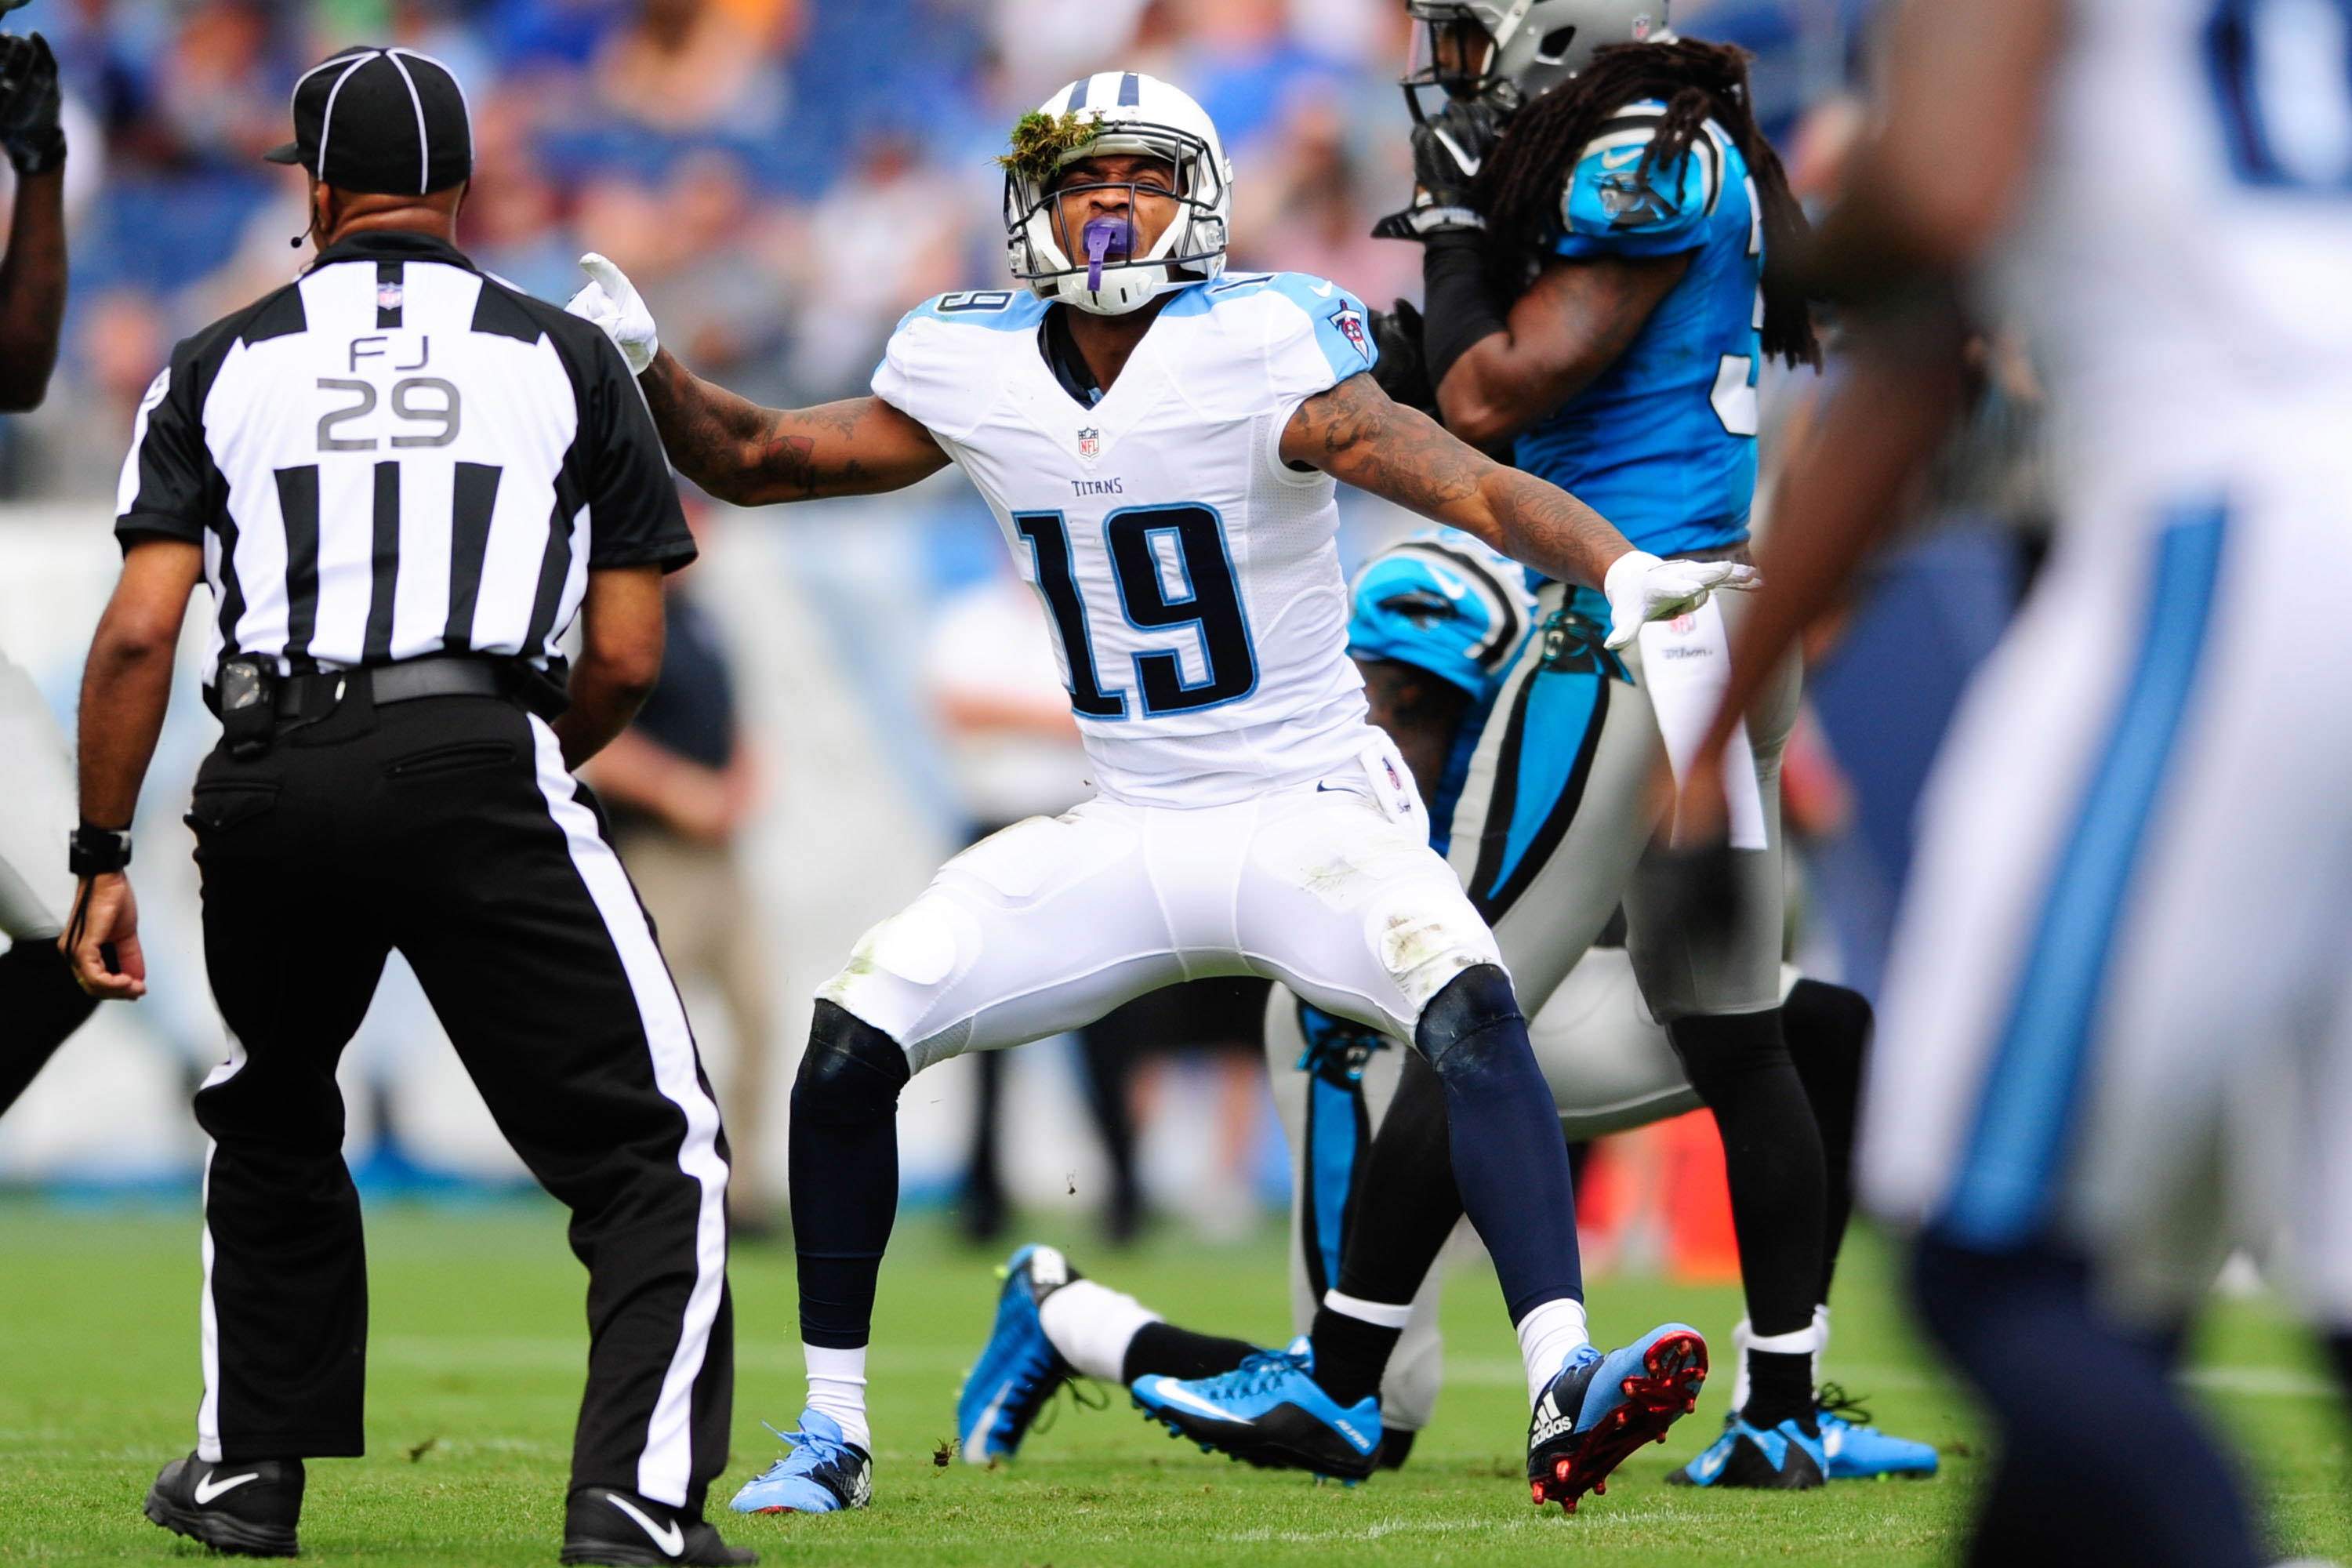 9491163-nfl-preseason-carolina-panthers-at-tennessee-titans